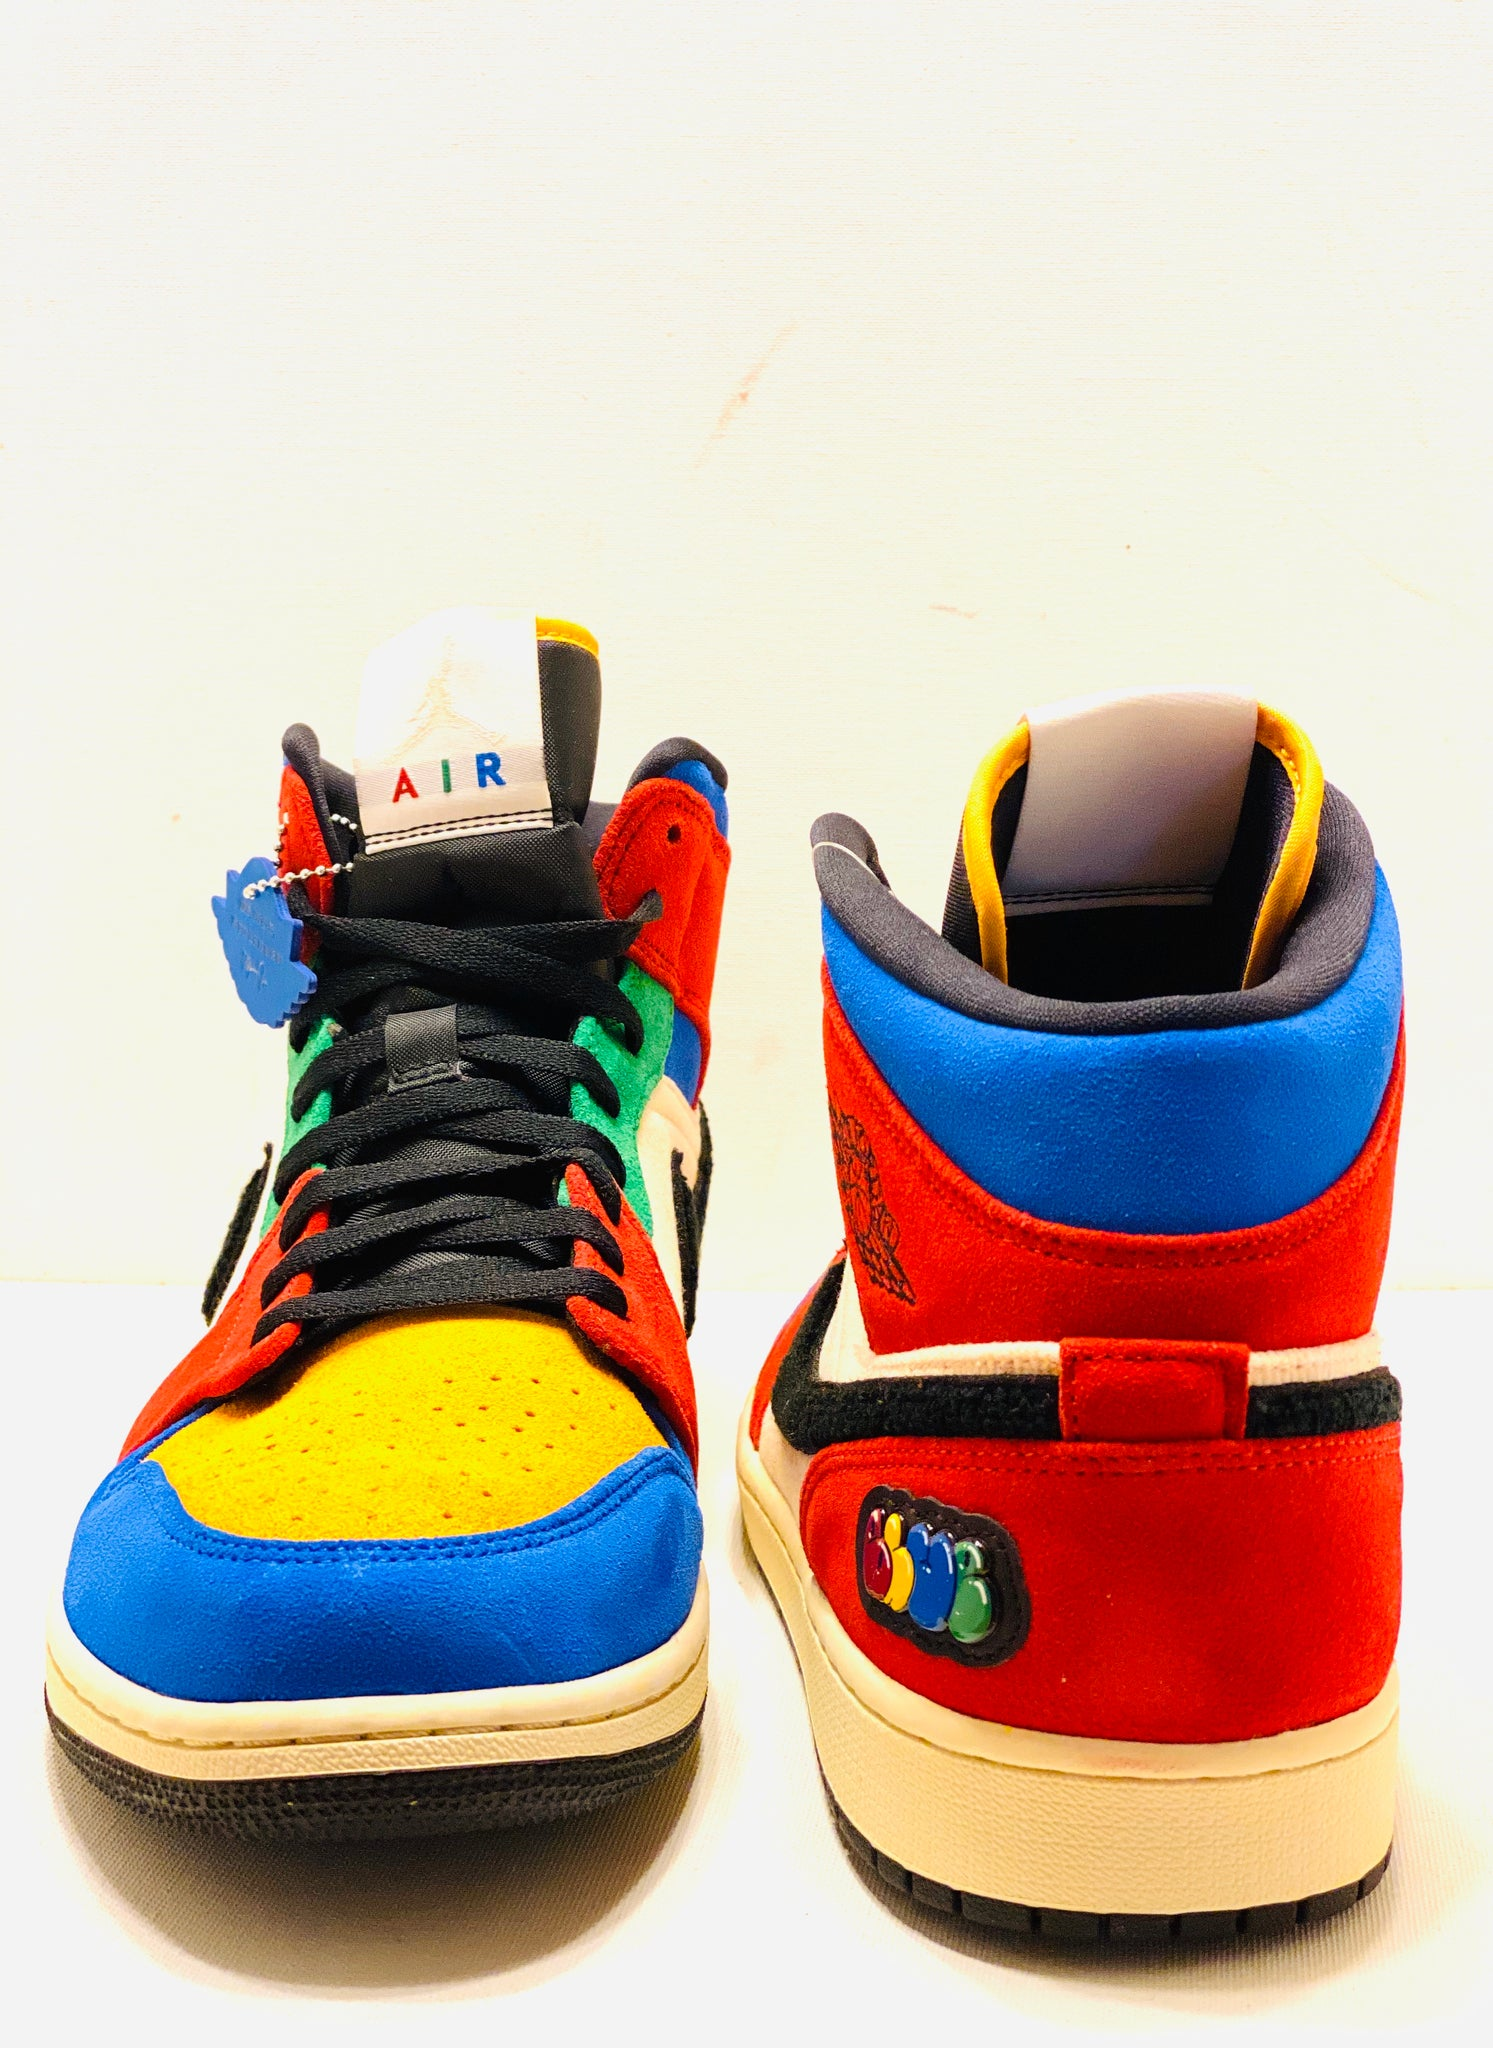 Air Jordan 1 Mid Fearless Blue The Great Labcity Shop